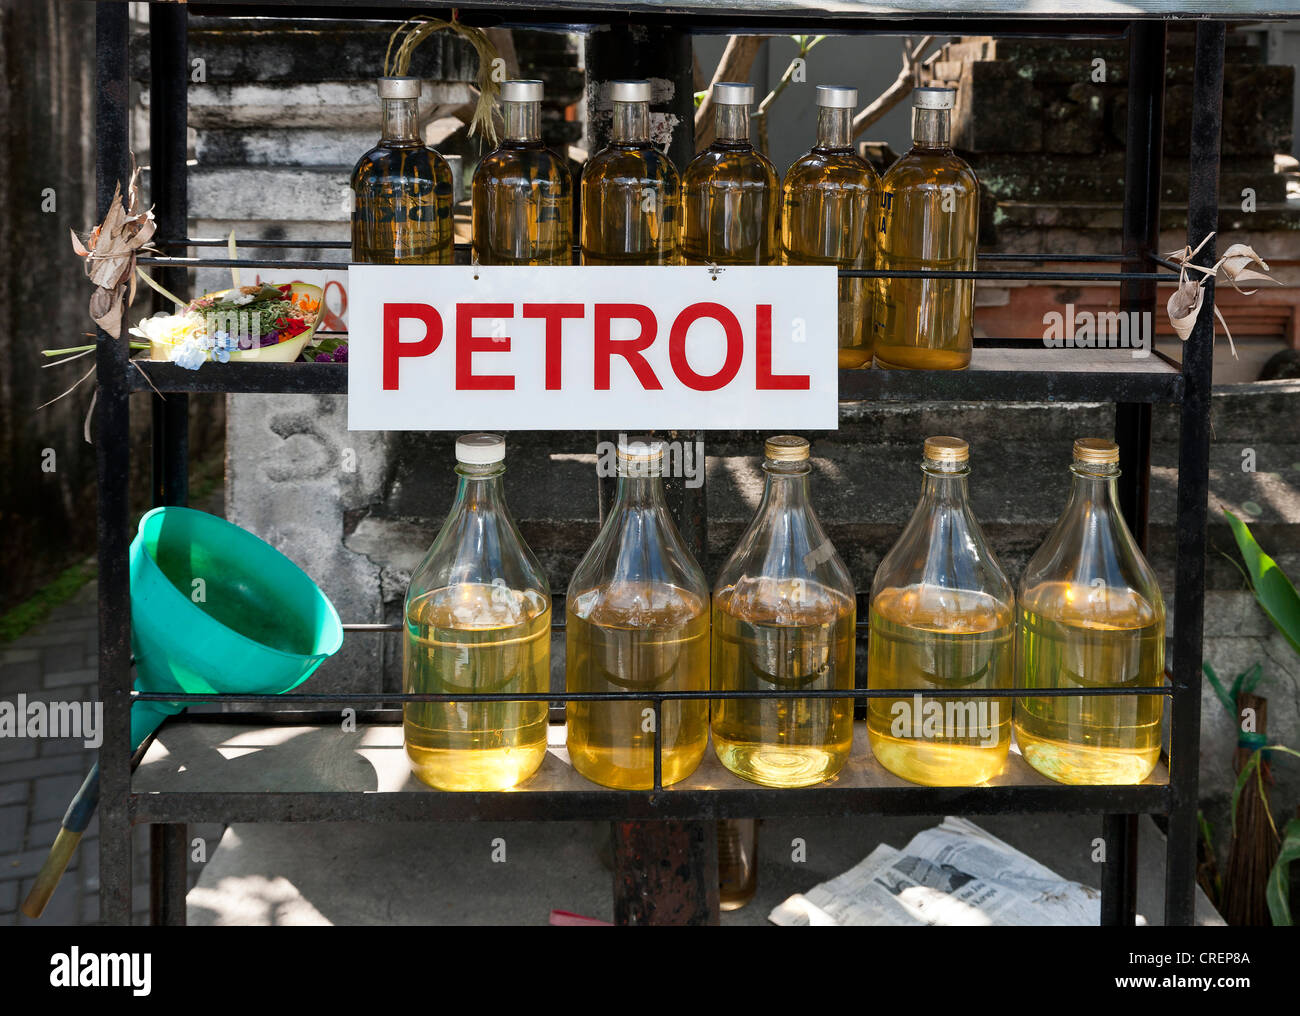 Sale of fuel in bottles, Kuta, south Bali, Bali, Indonesia, Southeast Asia, Asia - Stock Image